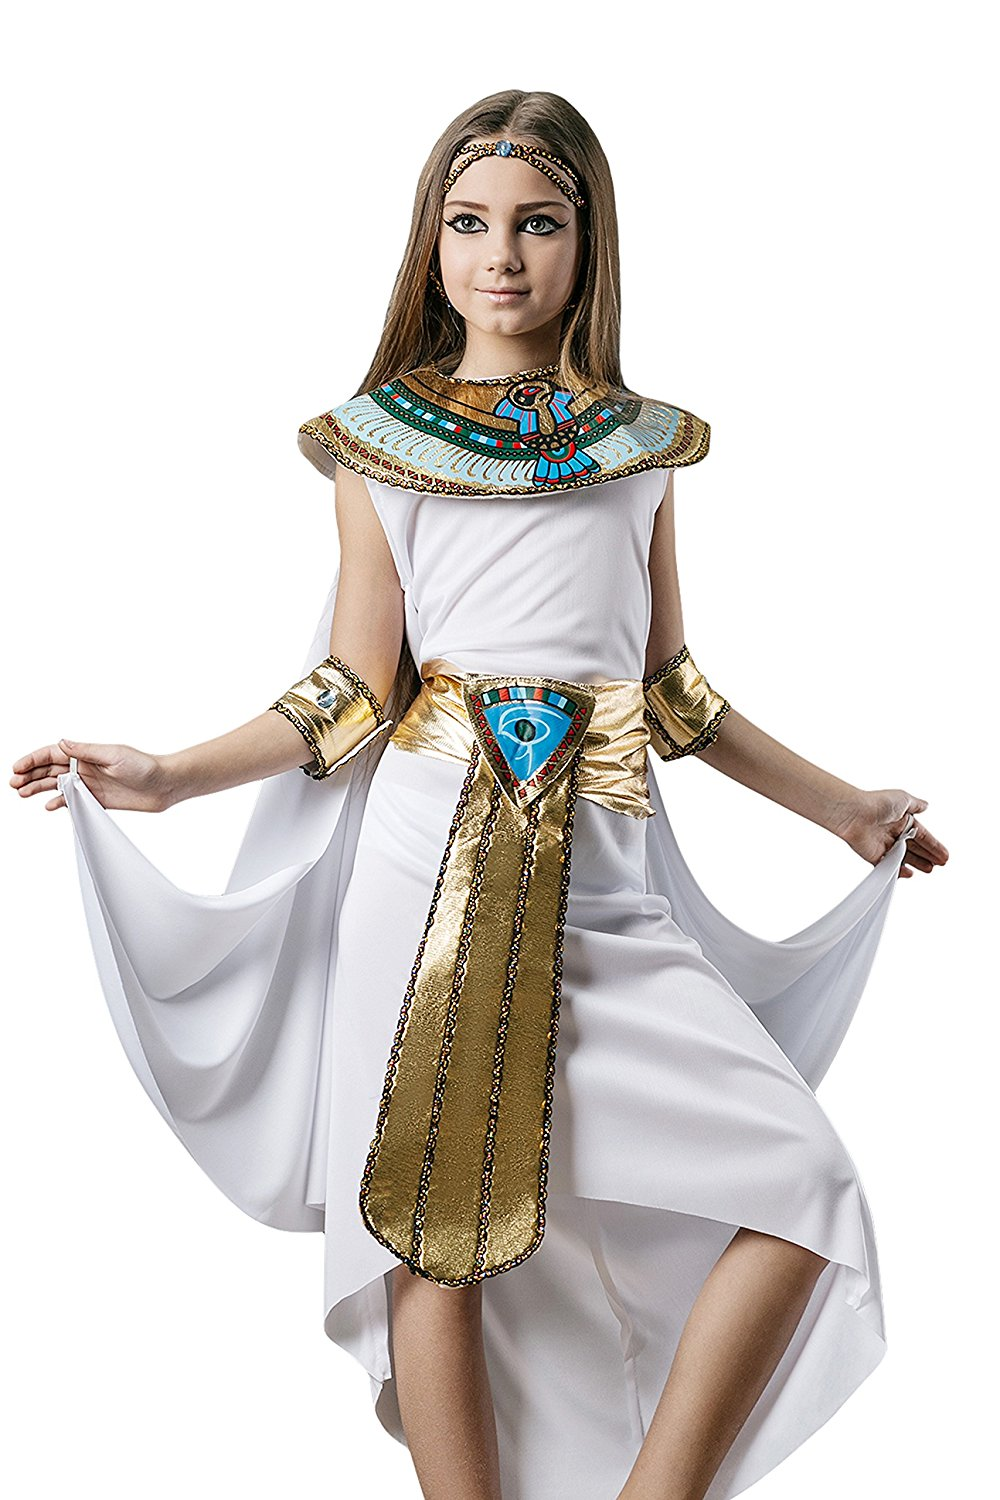 Kids Girls Cleopatra Halloween Costume Egyptian Princess Dress Up u0026 Role Play (6-8  sc 1 st  Alibaba & Buy Kids Girls Cleopatra Halloween Costume Egyptian Princess Dress ...